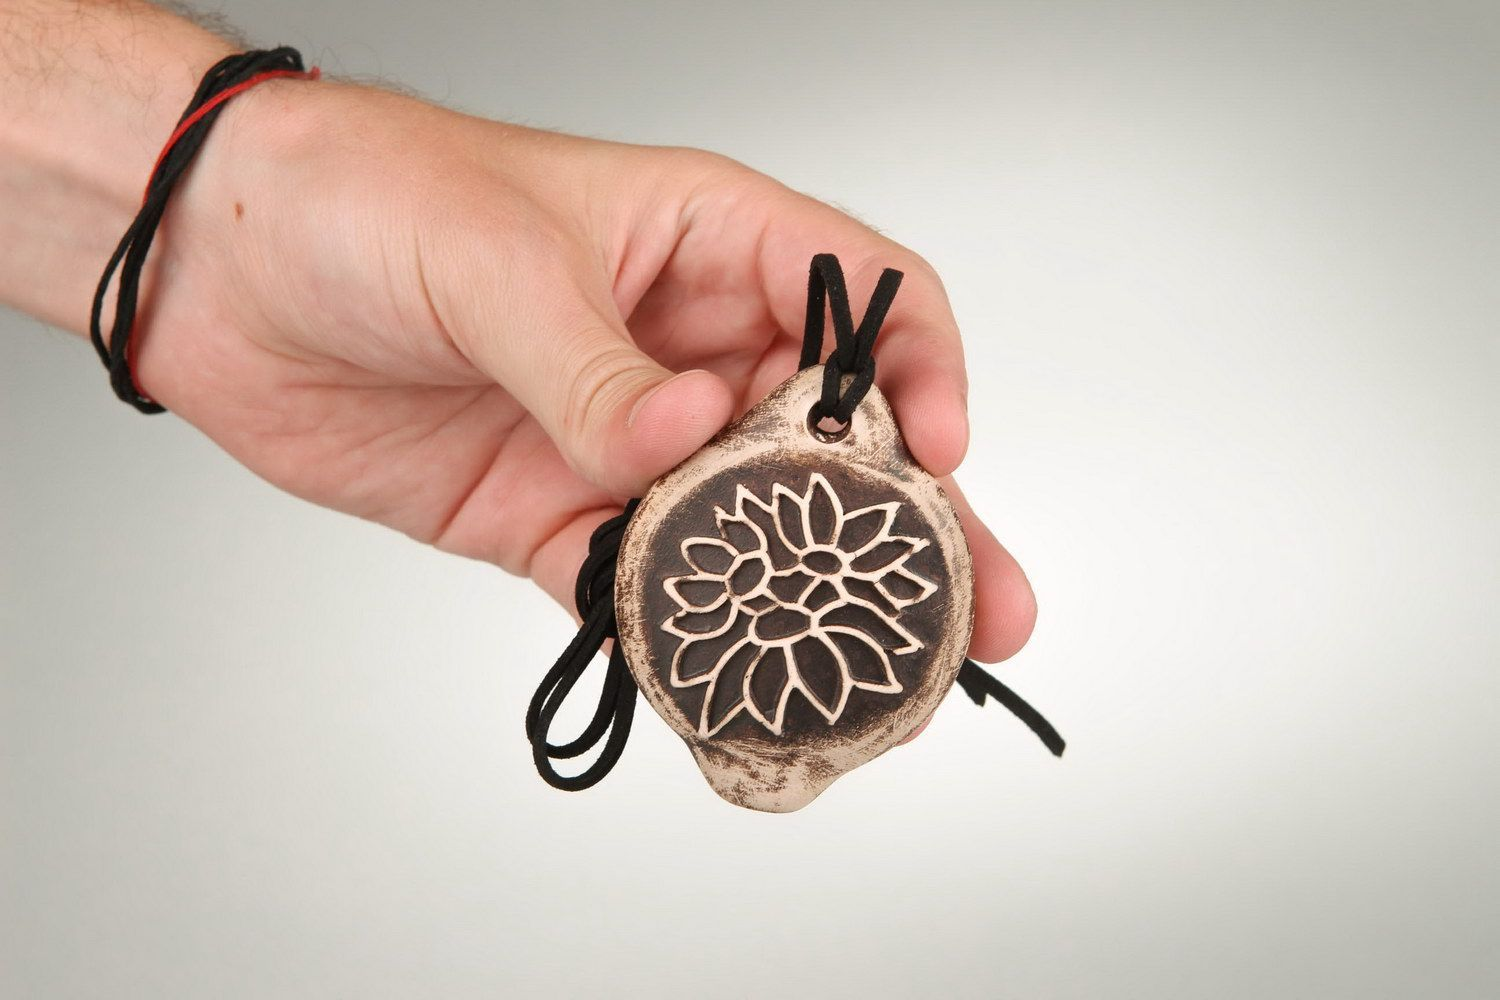 Tin whistle pendant made of clay with carving photo 4